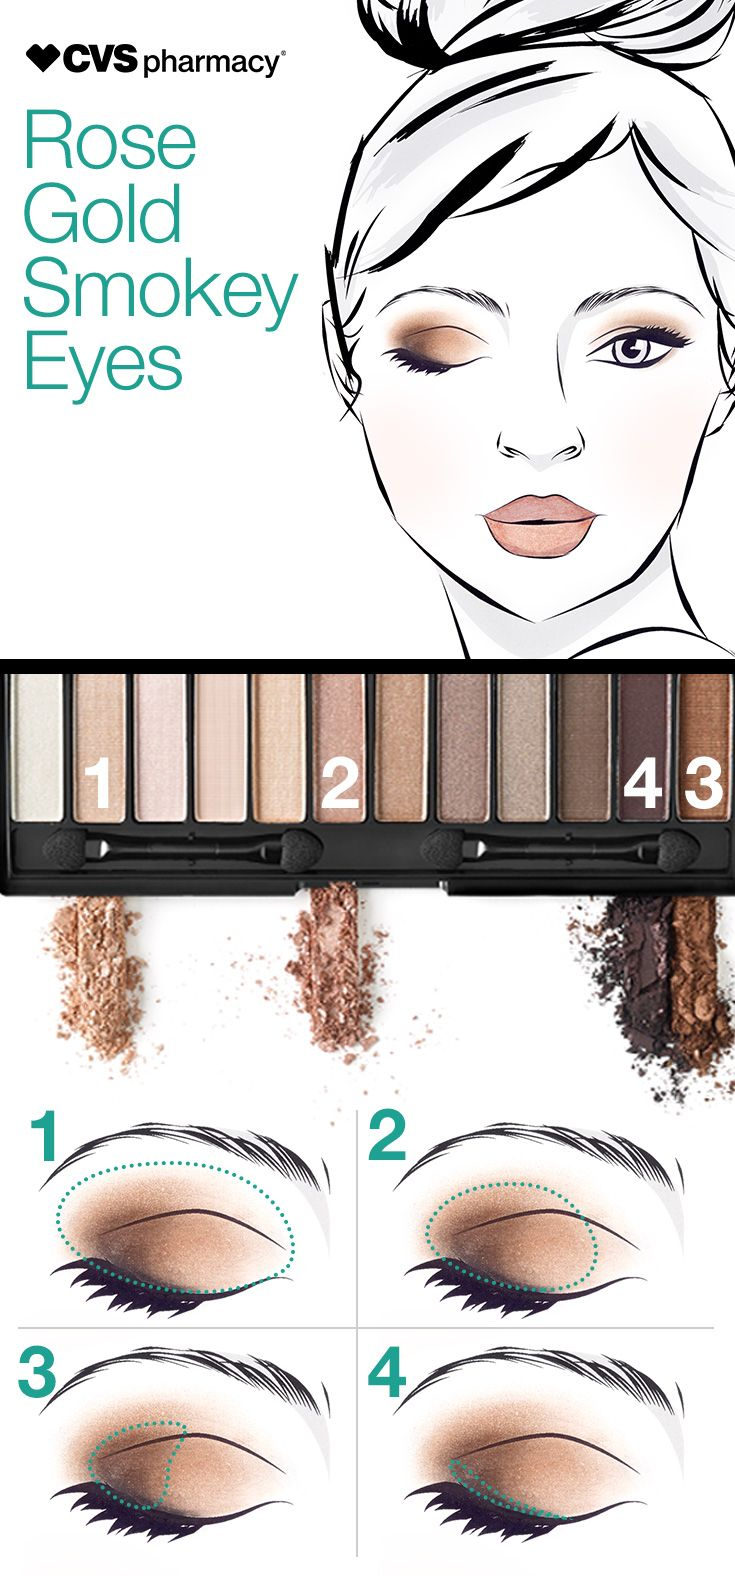 When you can't pick a shade, choose more than one! Palettes are great for the traveling beauty who needs to pack as much color as possible into one product. Pick a palette that combines more than one color to help you create maximum looks with minimal packing.  Get this rose gold look on the go with the Magnif'eyes Eye Contouring Palette from Rimmel.